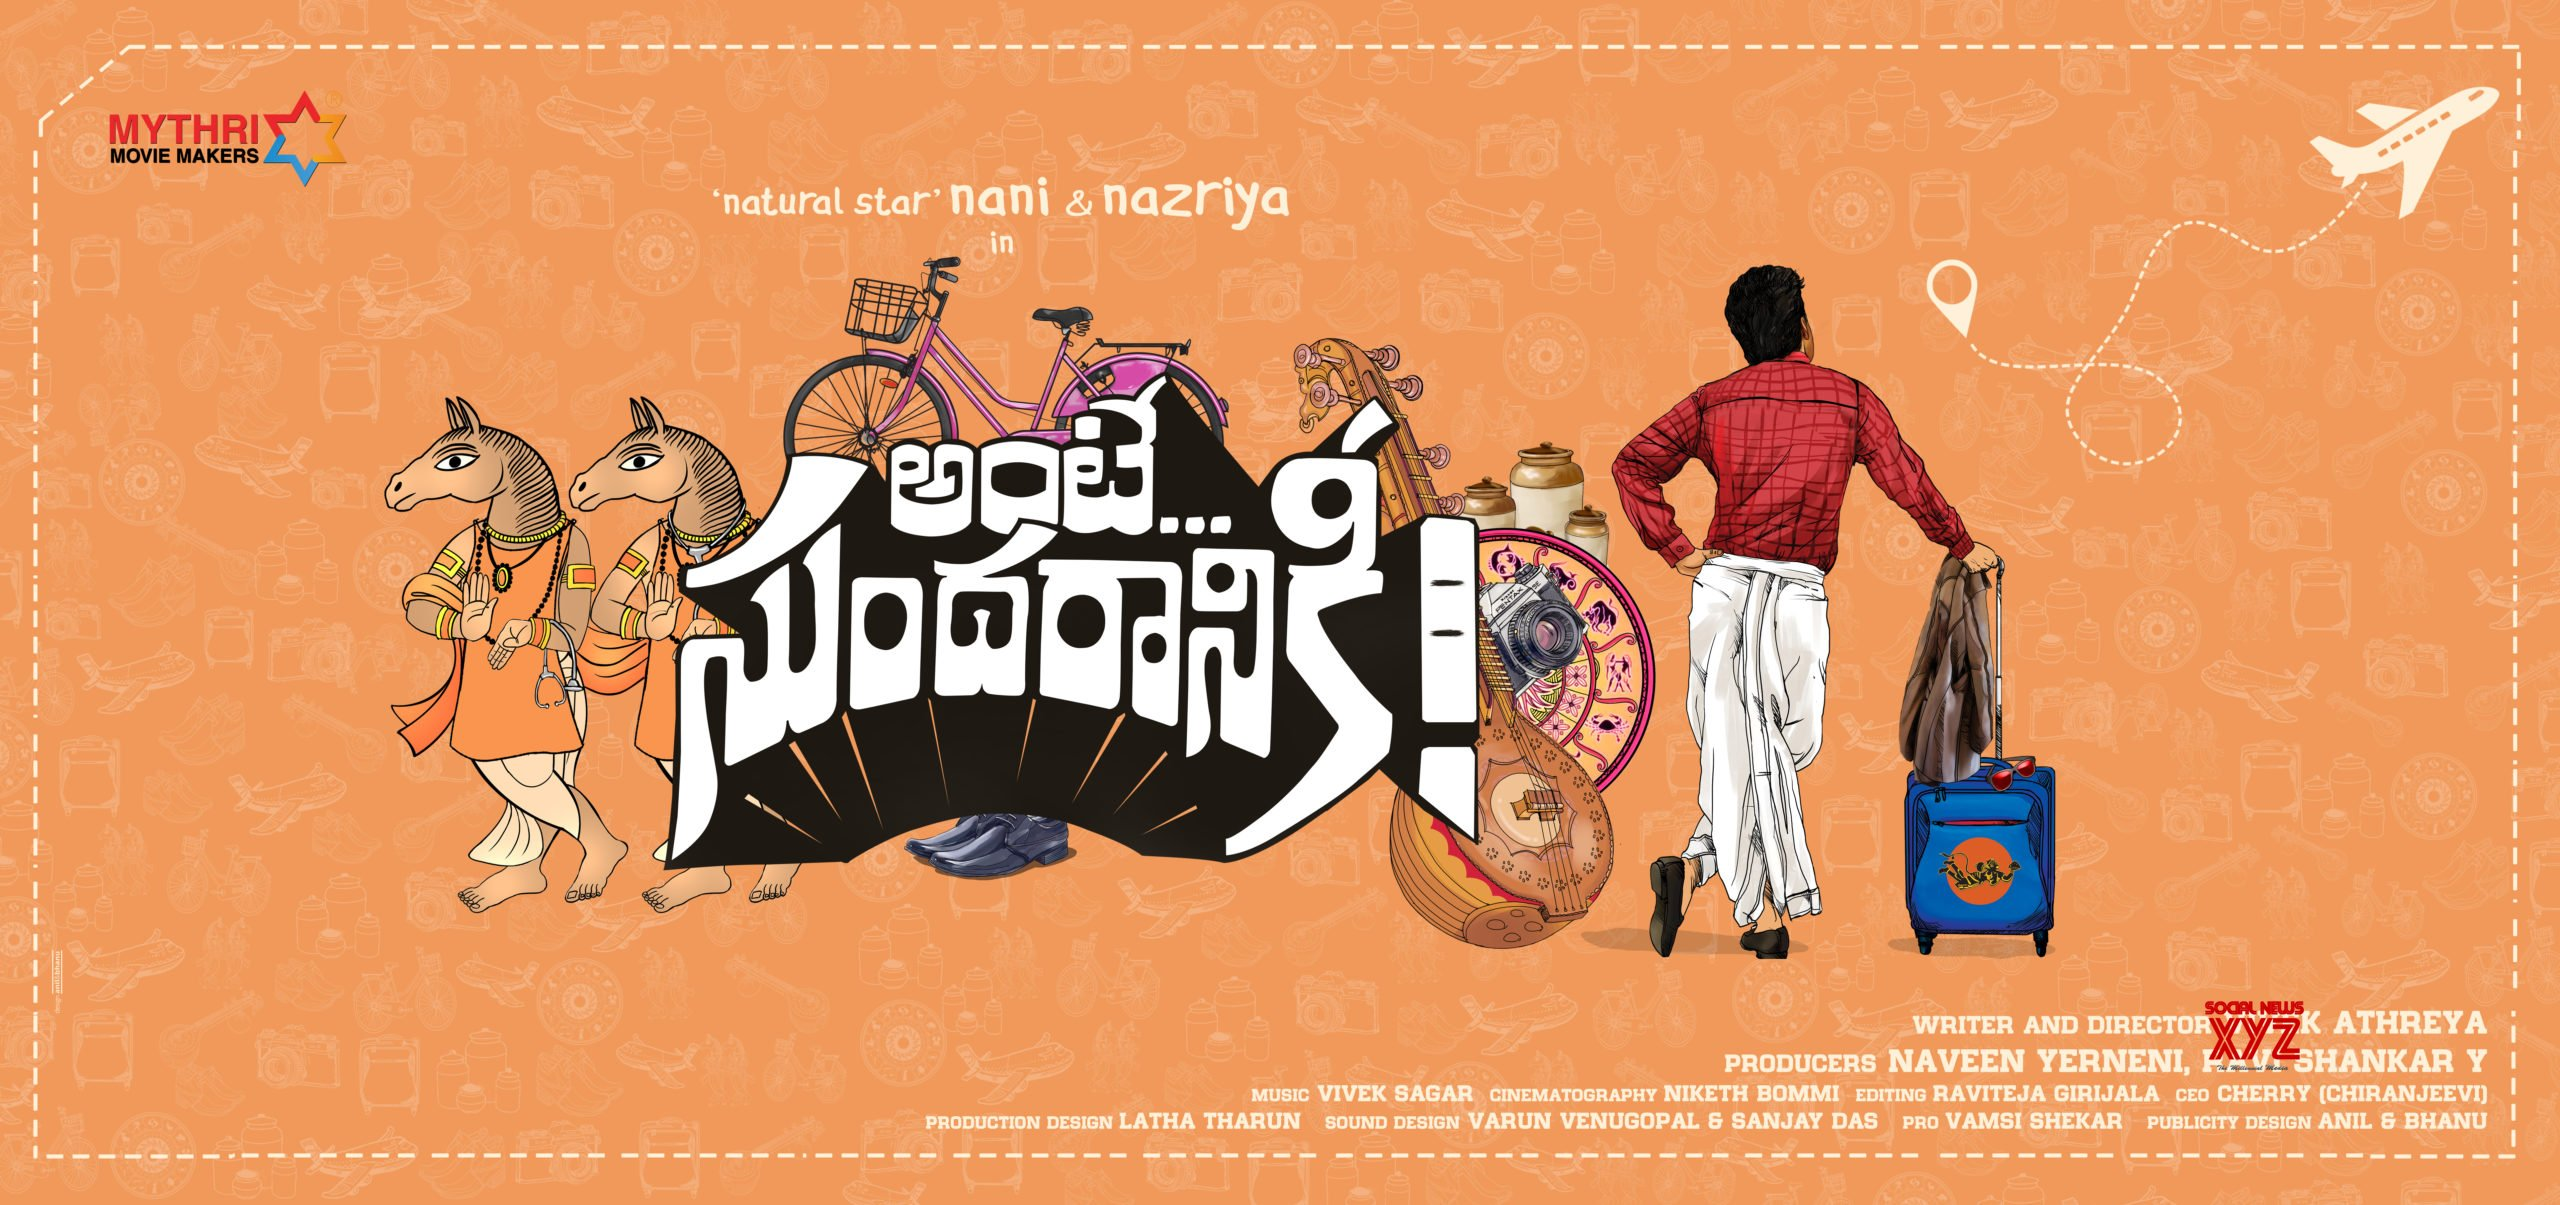 Nani, Vivek Athreya, Mythri Movie Makers Film Titled Ante Sundaraniki